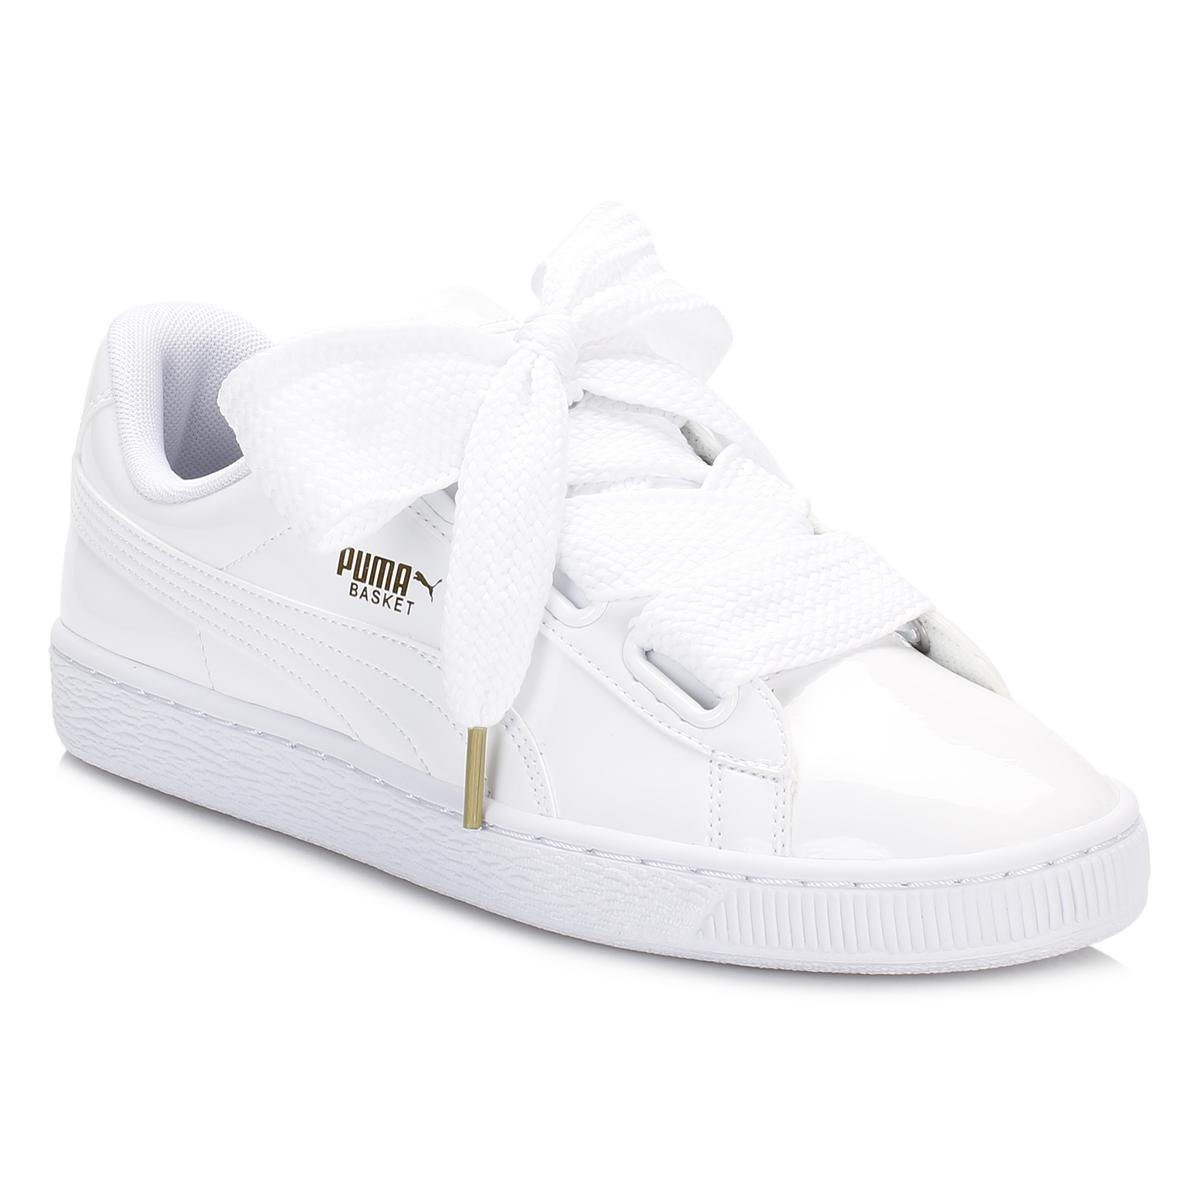 52f252e0b33c17 Lyst - PUMA Womens White Basket Heart Patent Trainers in White